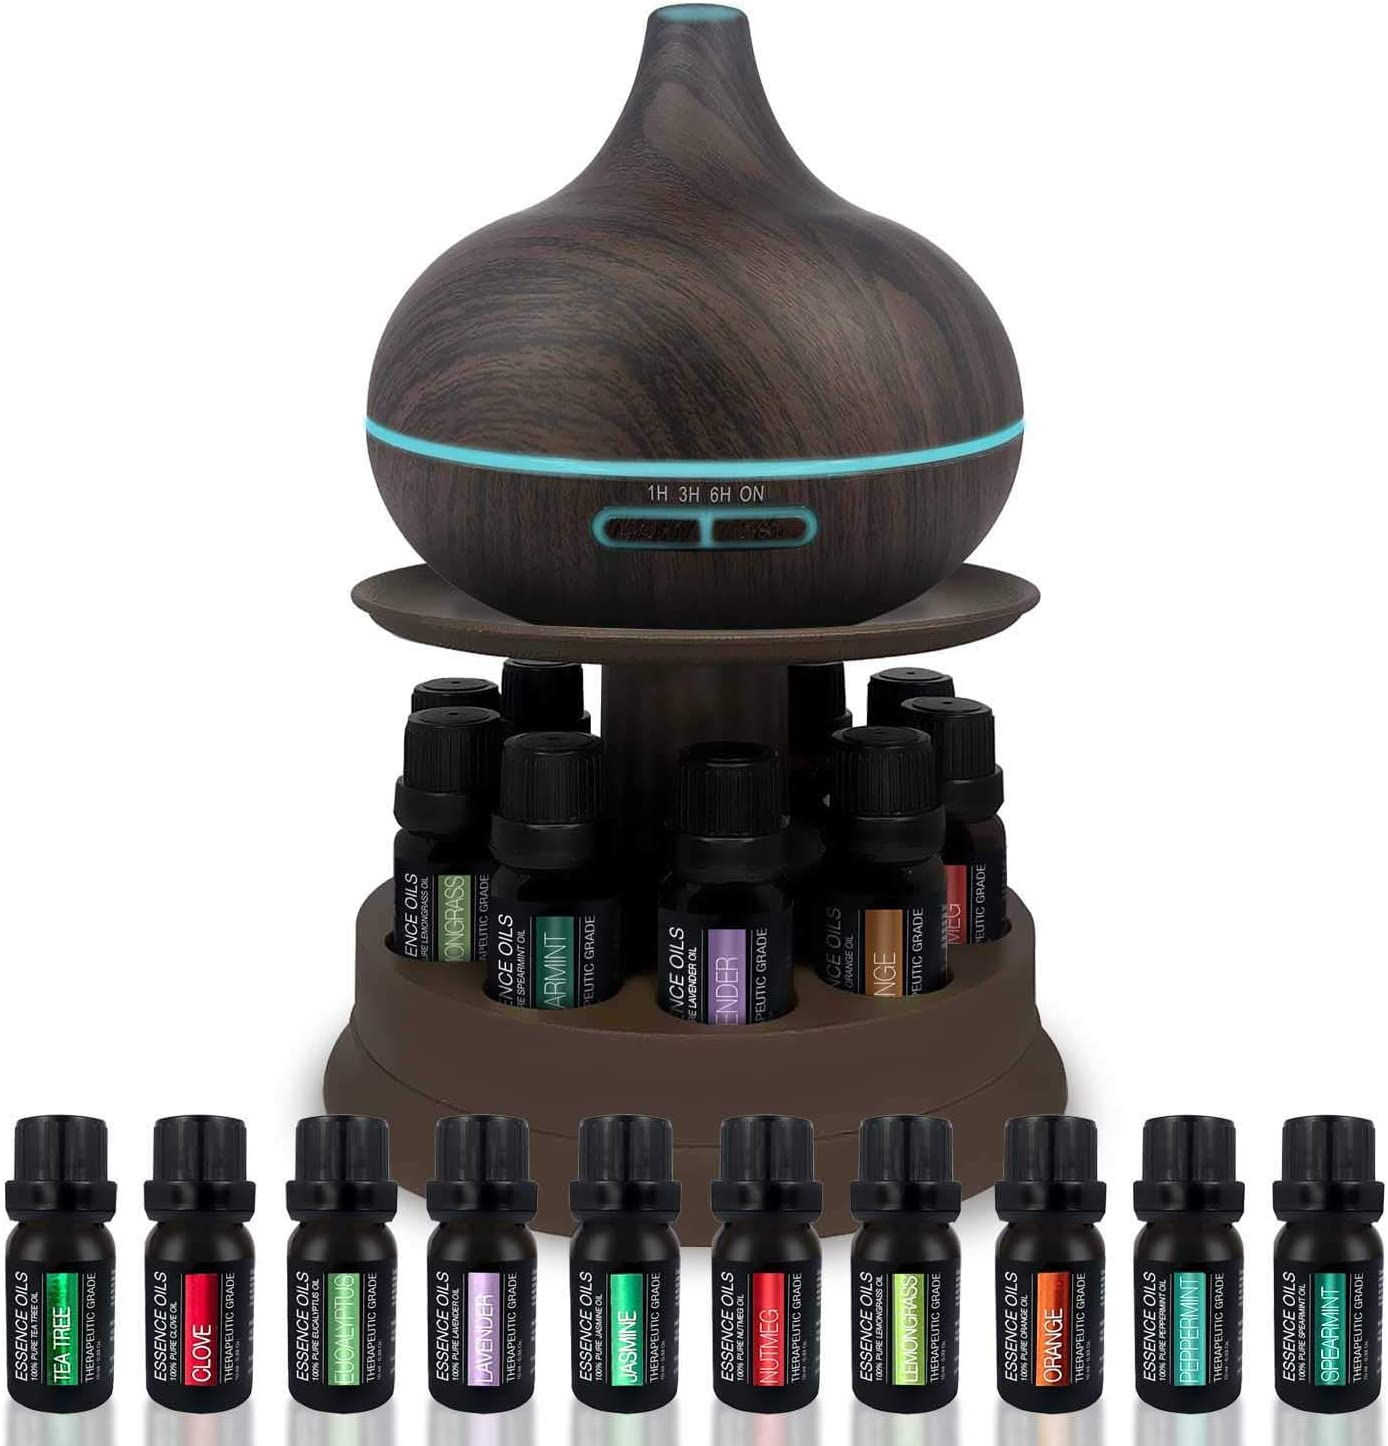 Ultimate Aromatherapy 300ml Diffuser